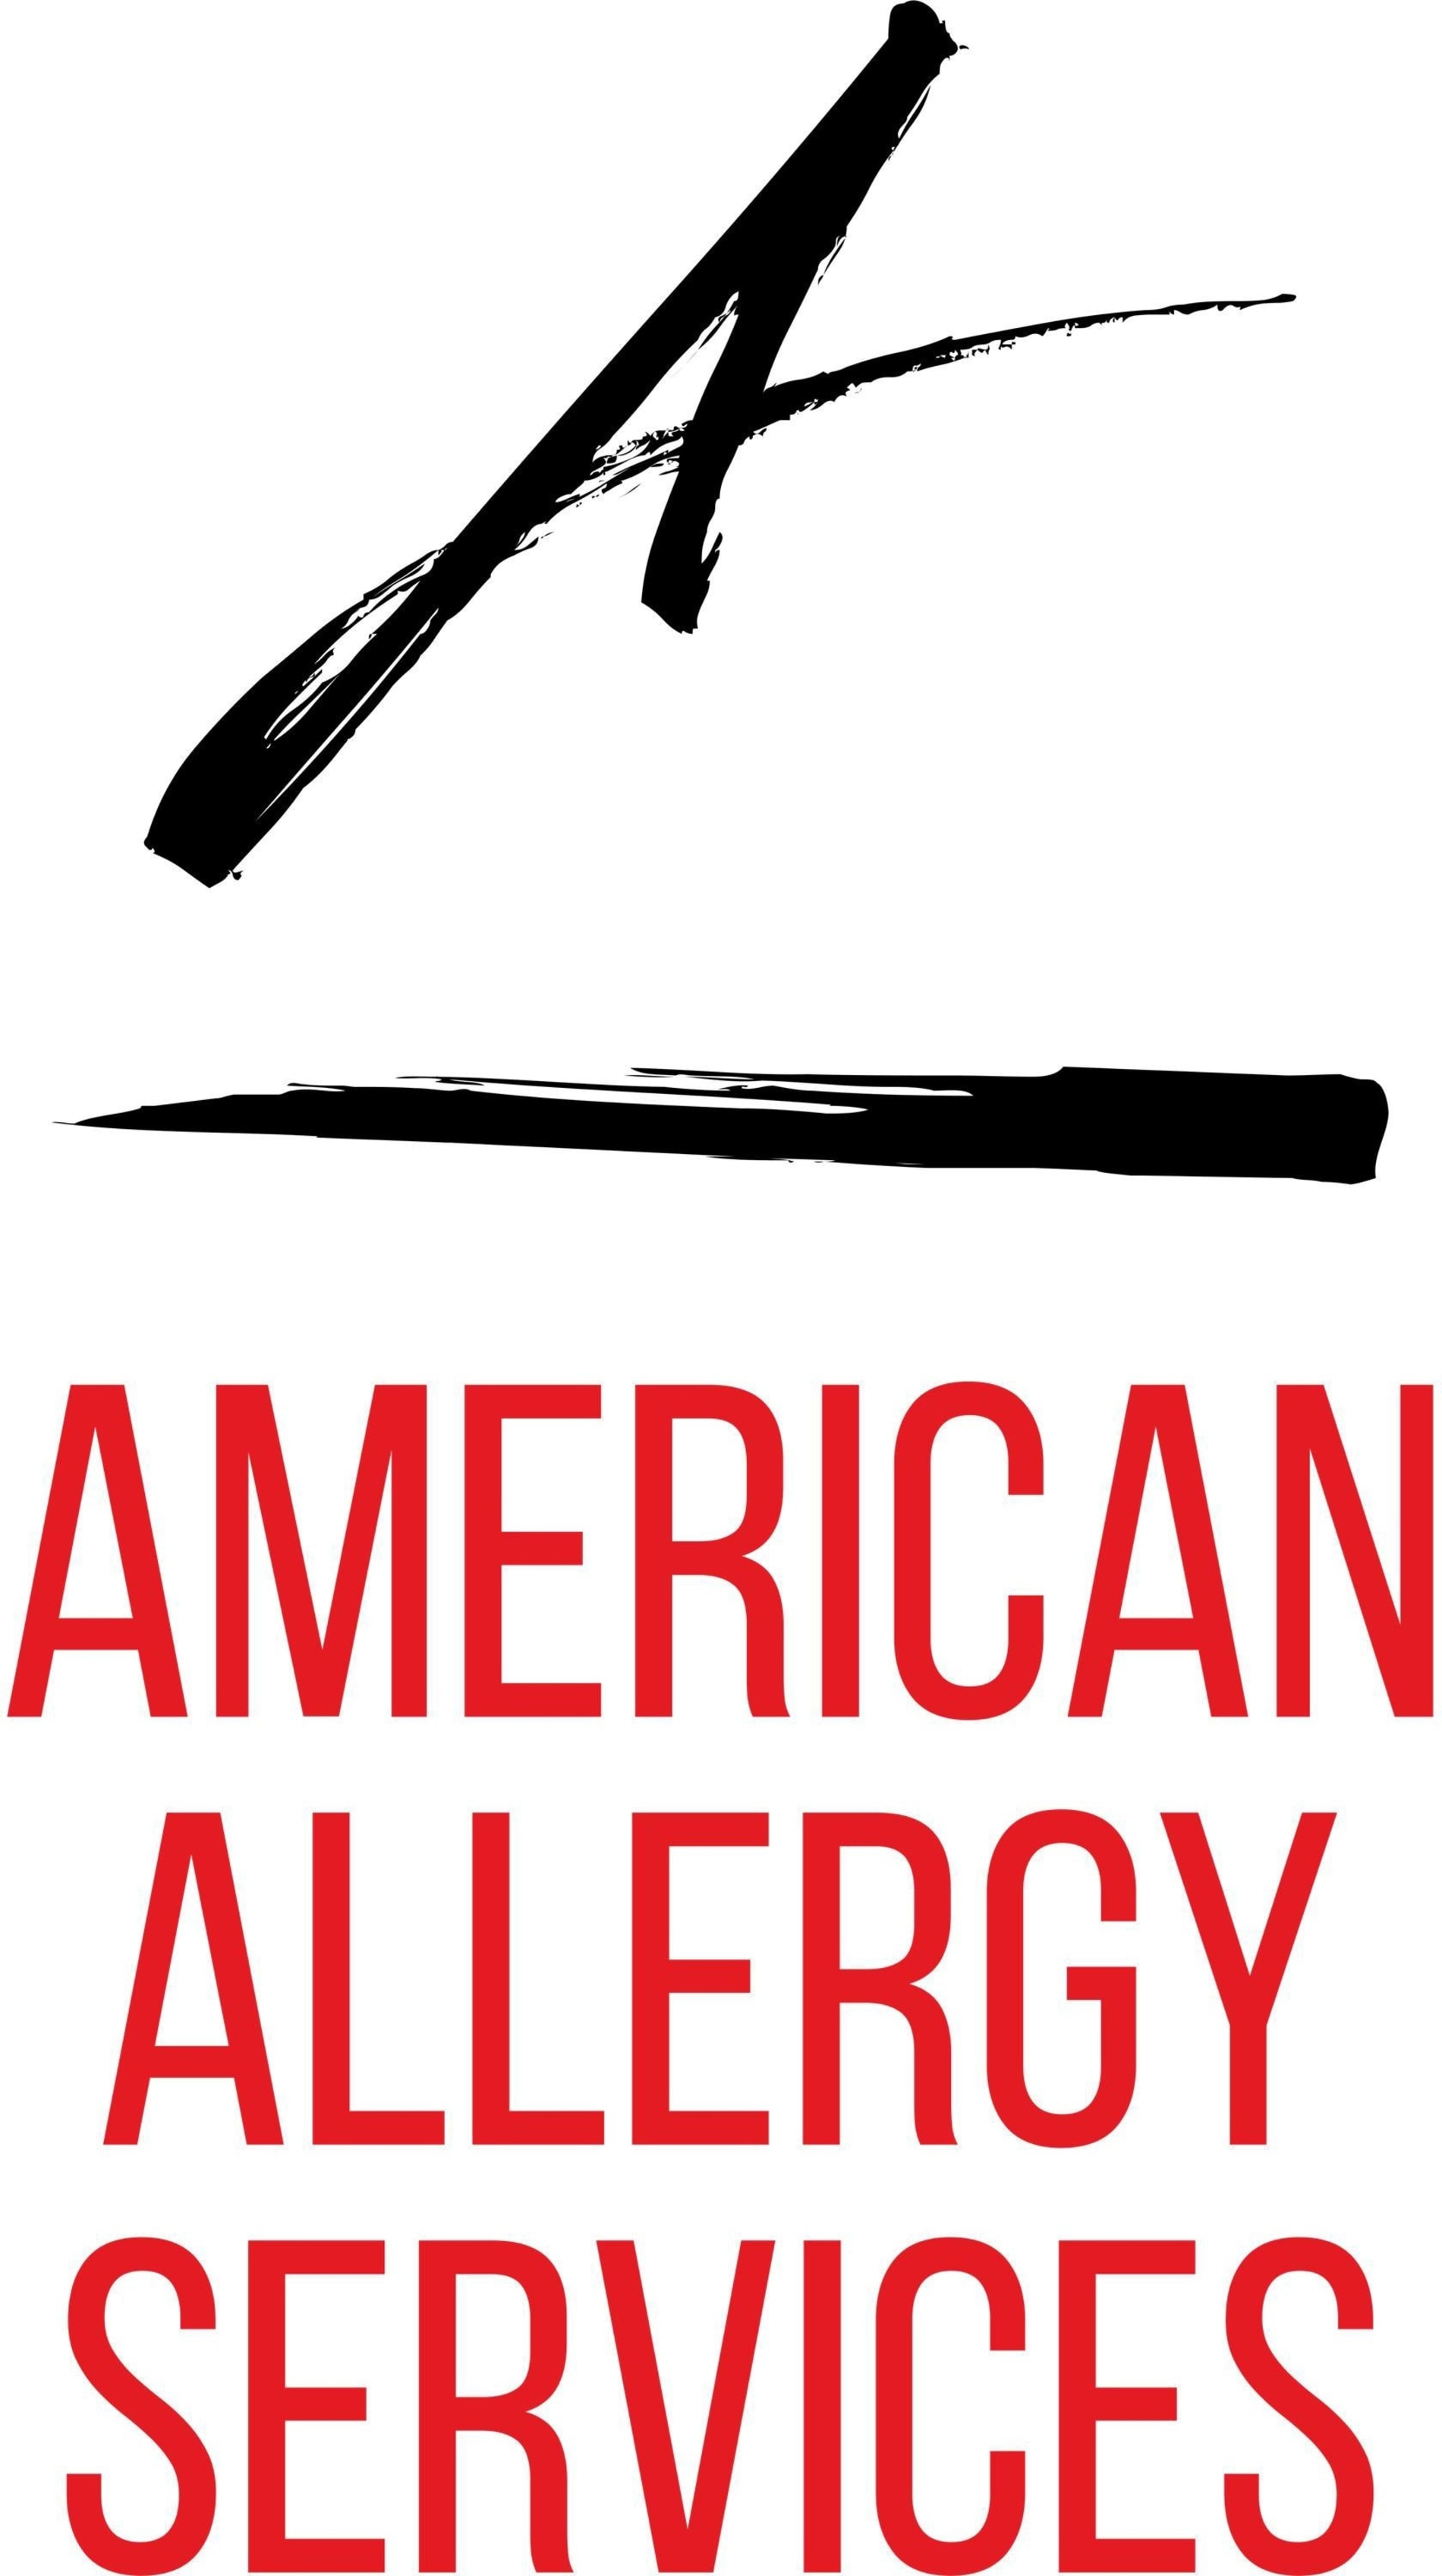 American Allergy Services